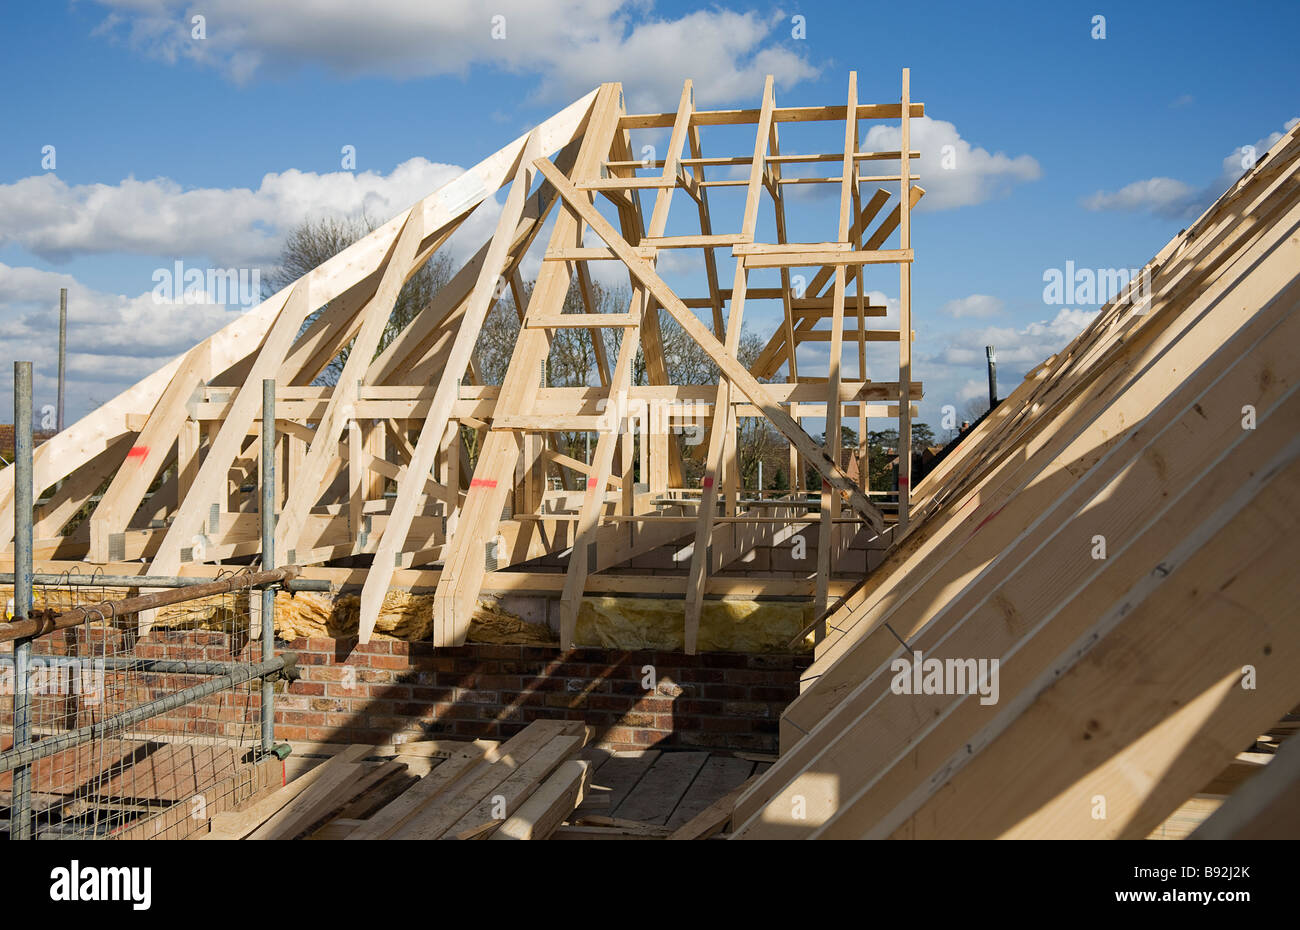 The Hip End now joined to attic trusses in the course of building the roof structure. - Stock Image